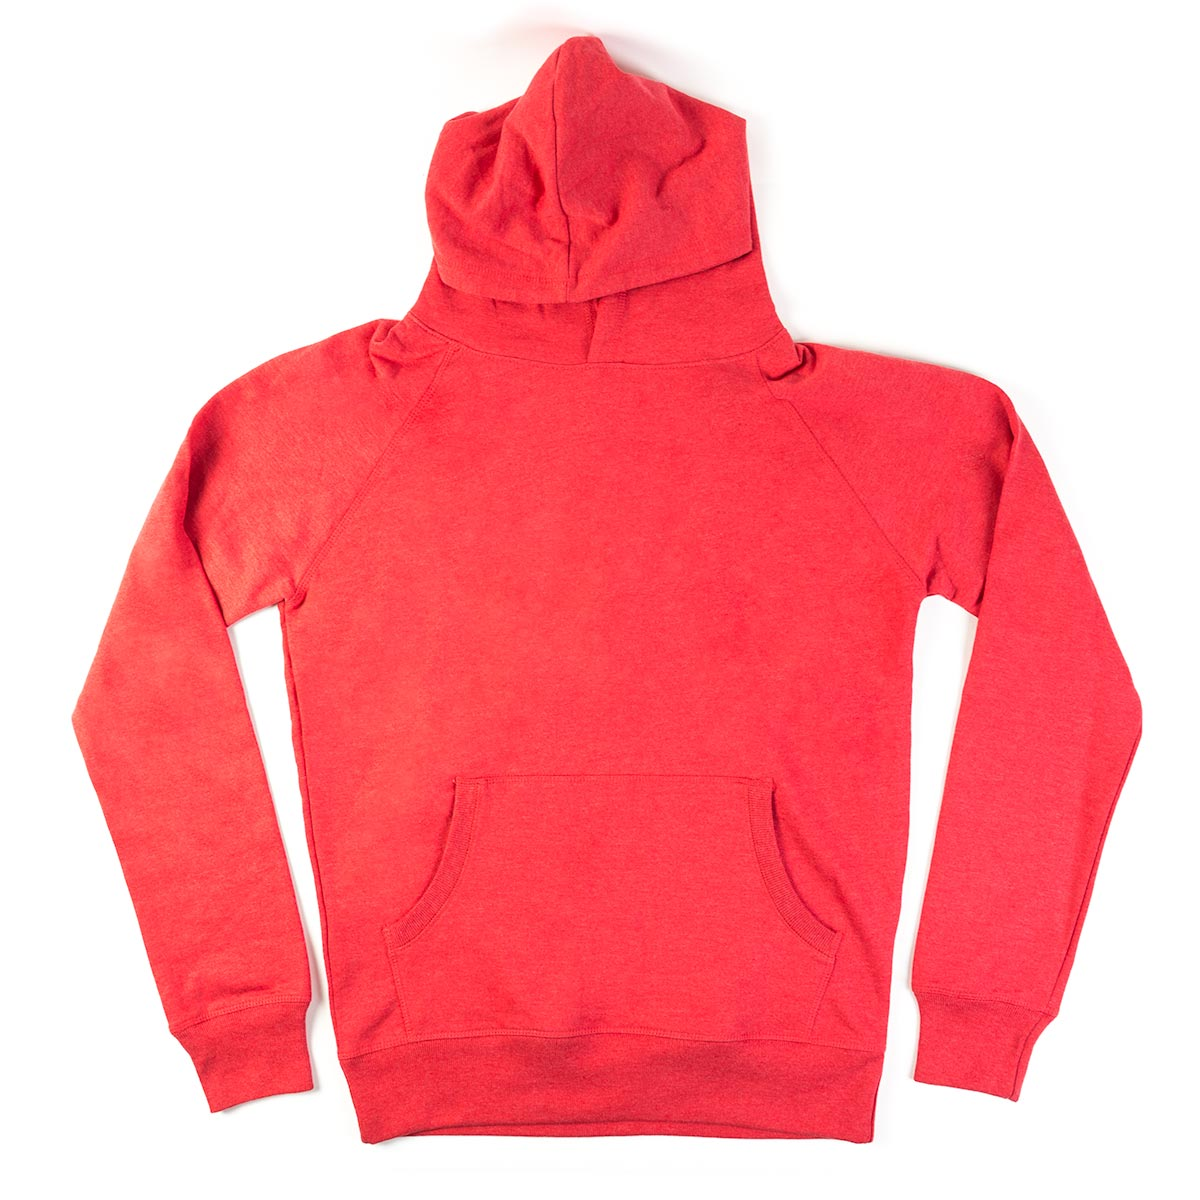 Salvage Recycled Pullover Hoodies